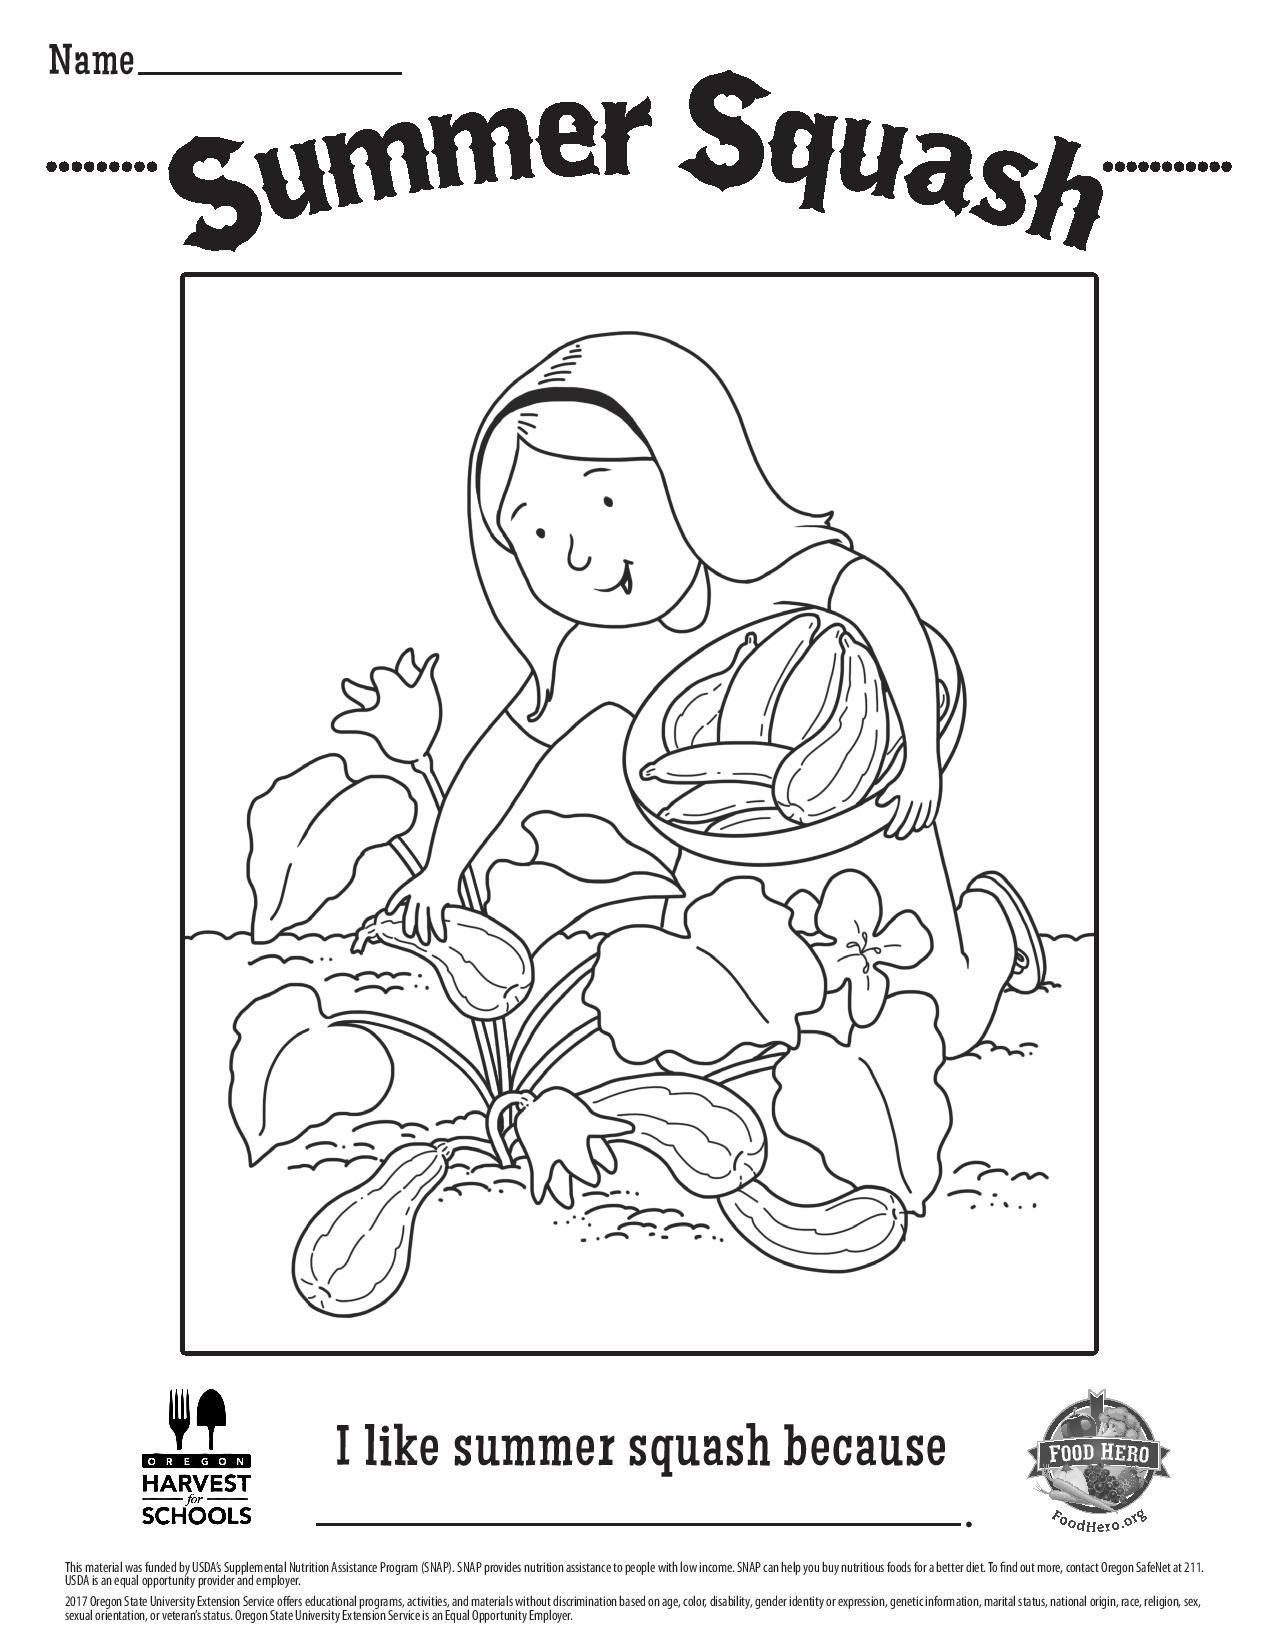 Free Summer Squash Coloring Sheet From Foodhero Org Childrens